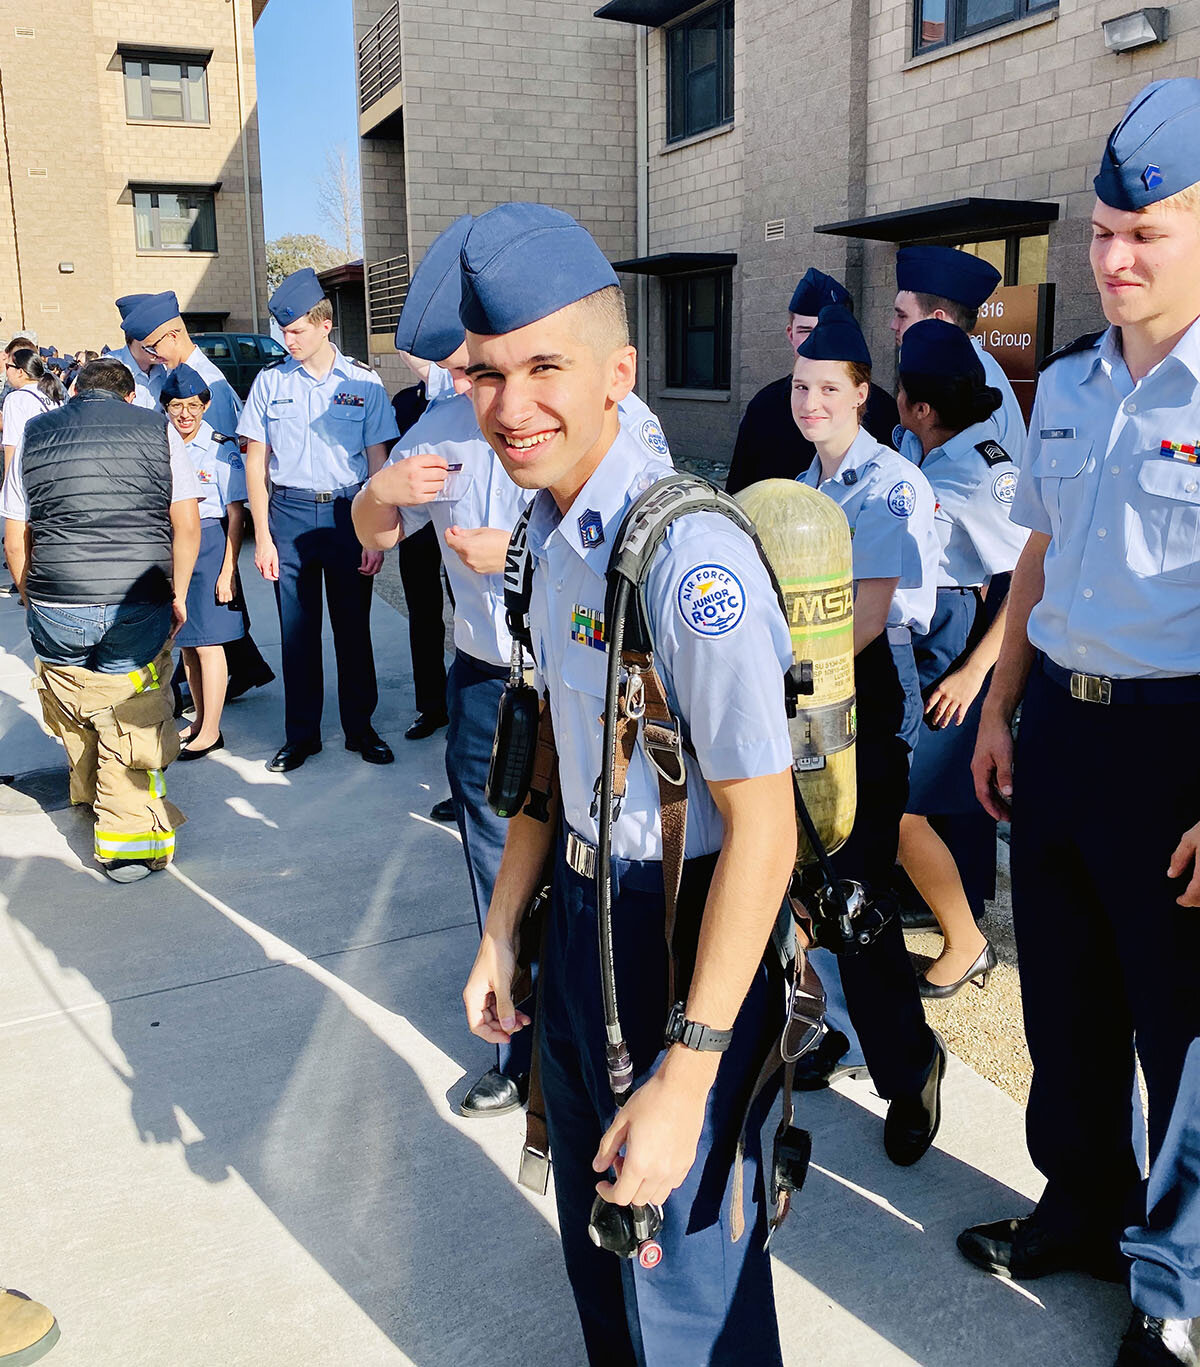 JROTC students visit Travis AFB, view career opportunities